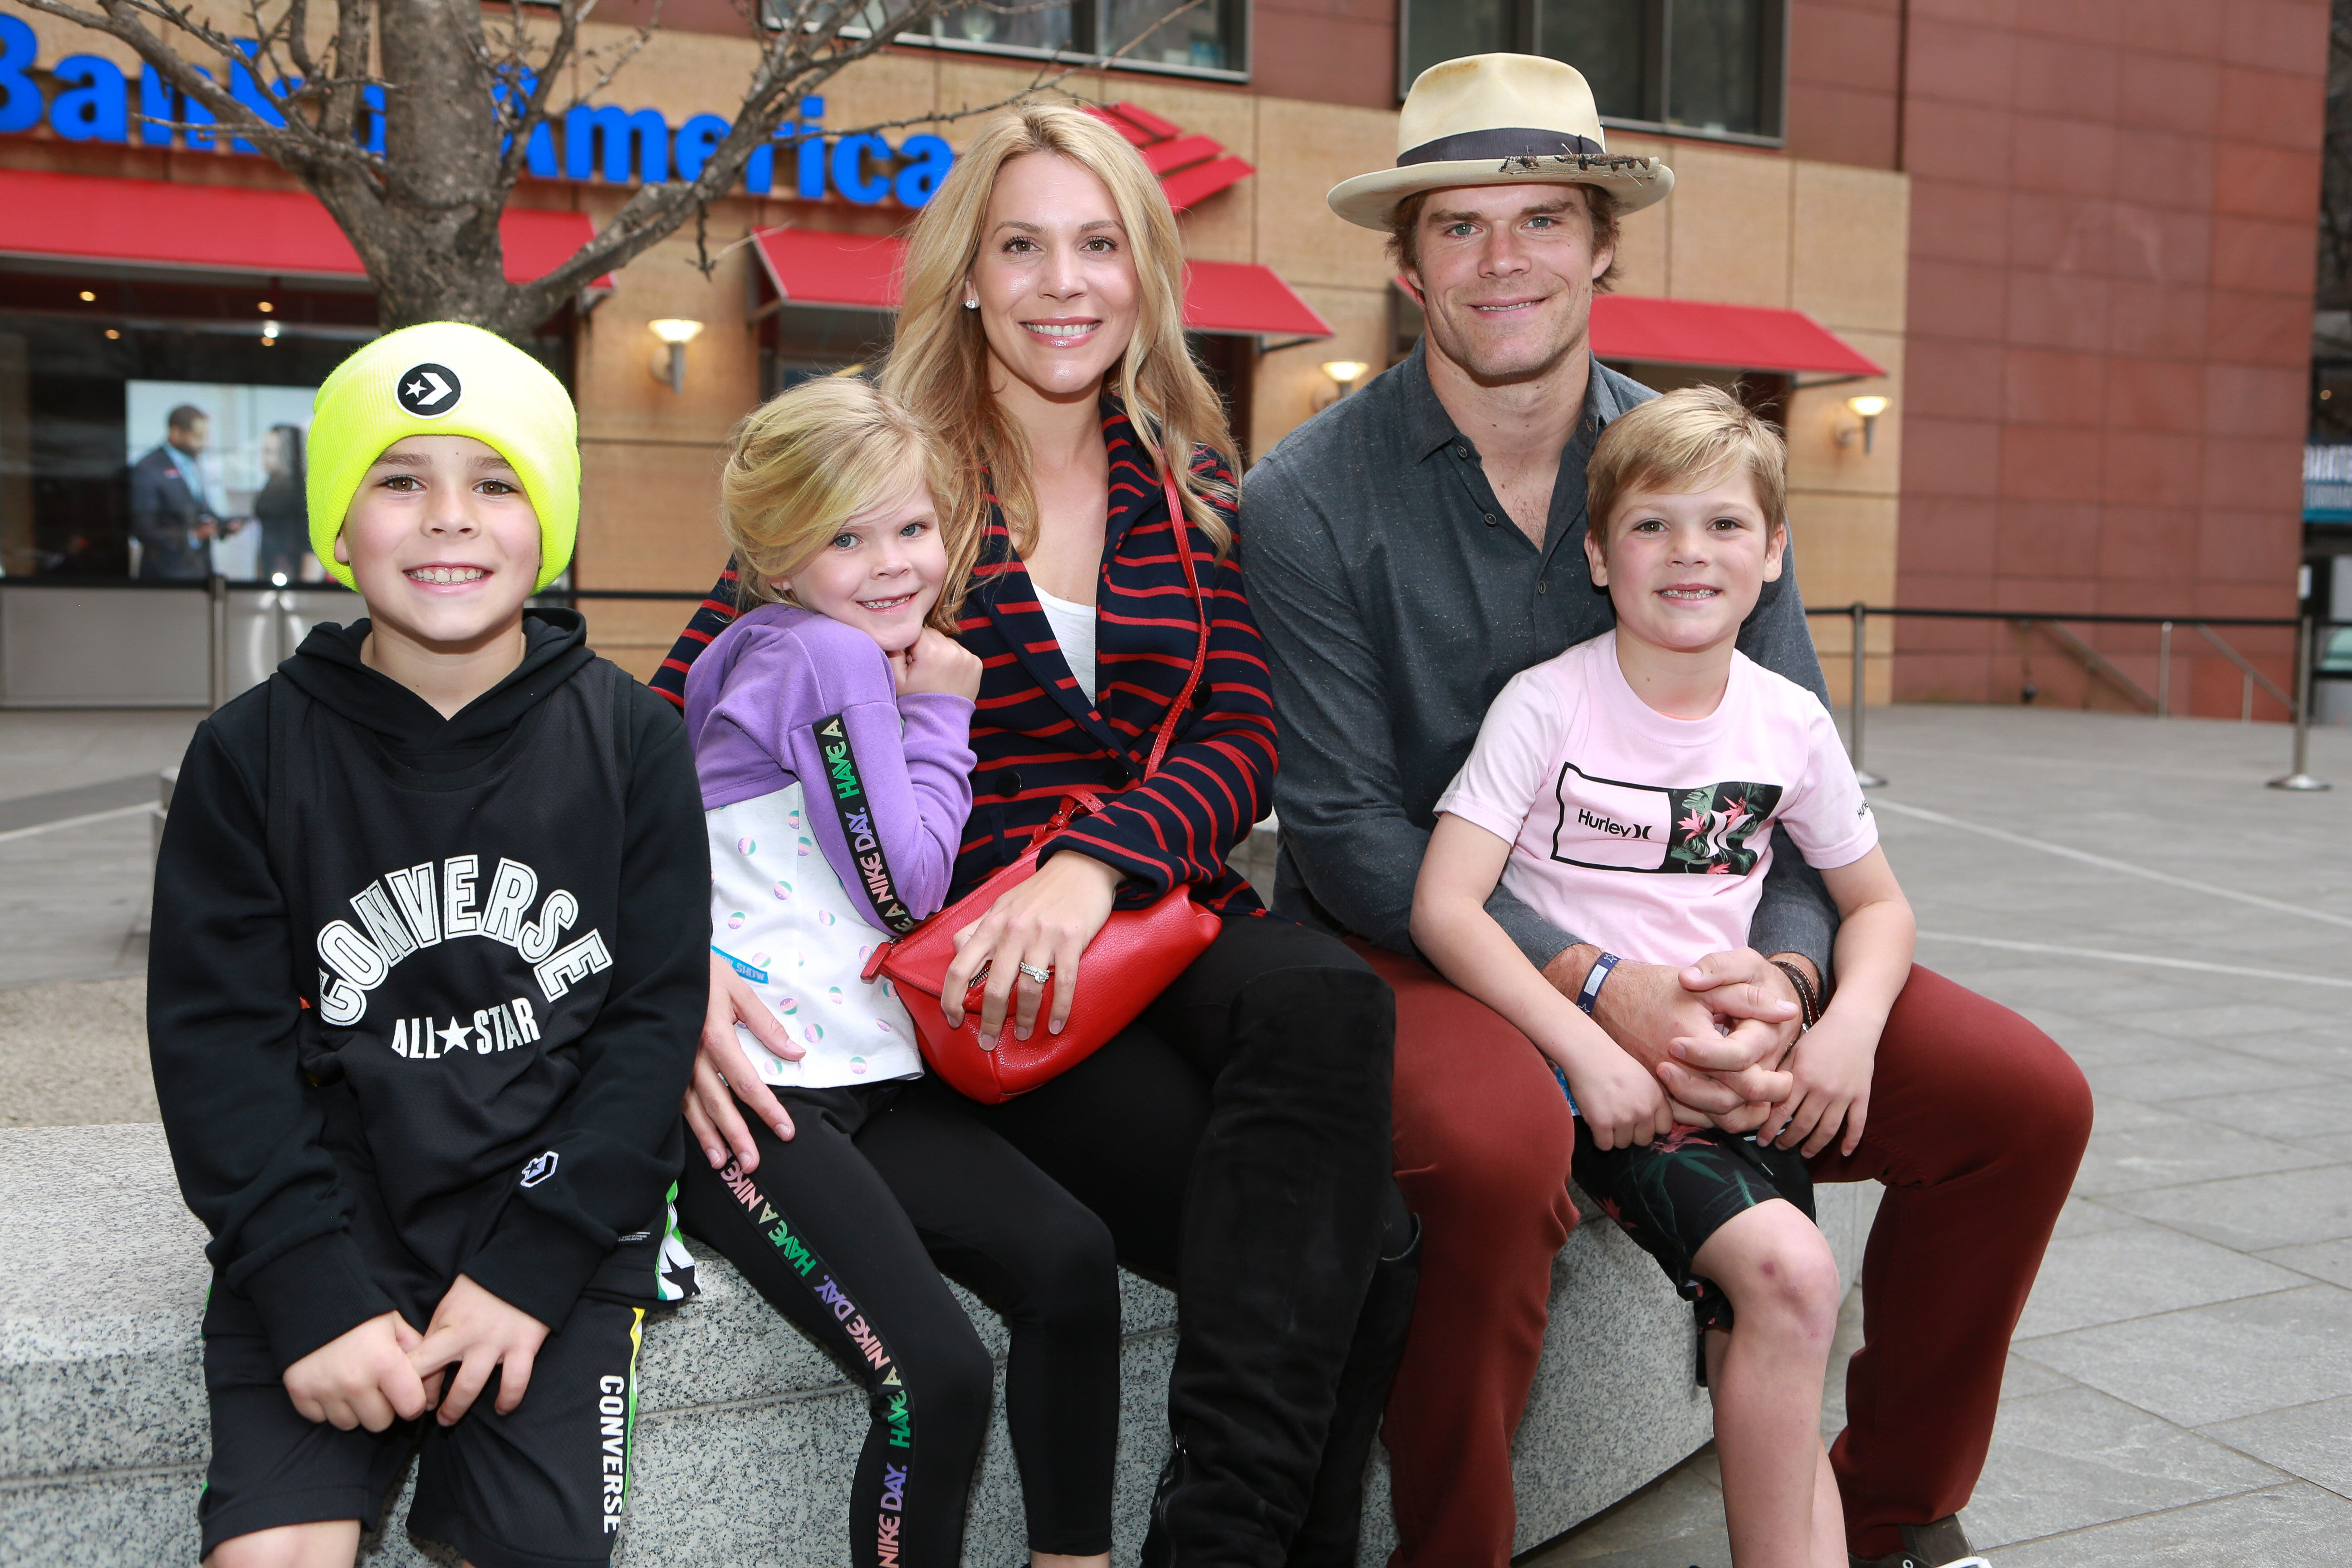 Panthers Greg Olsen and family Rookie USA Fashion Show